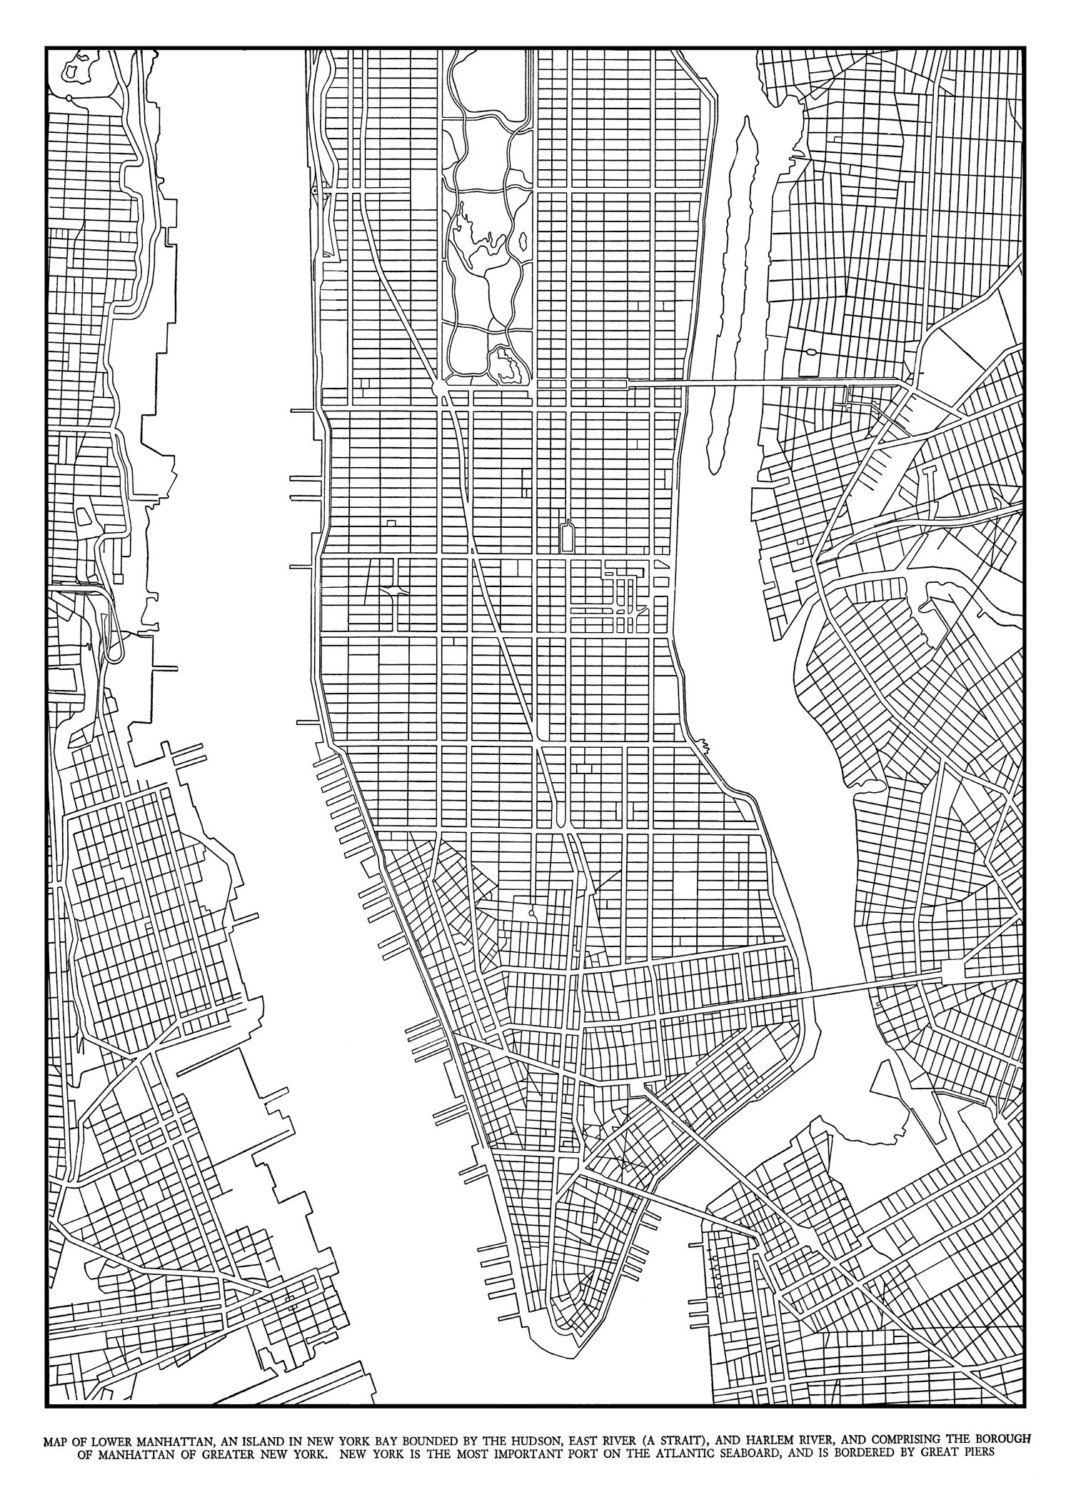 Pin by fontana on INSPIRATIONS Pinterest Manhattan City maps